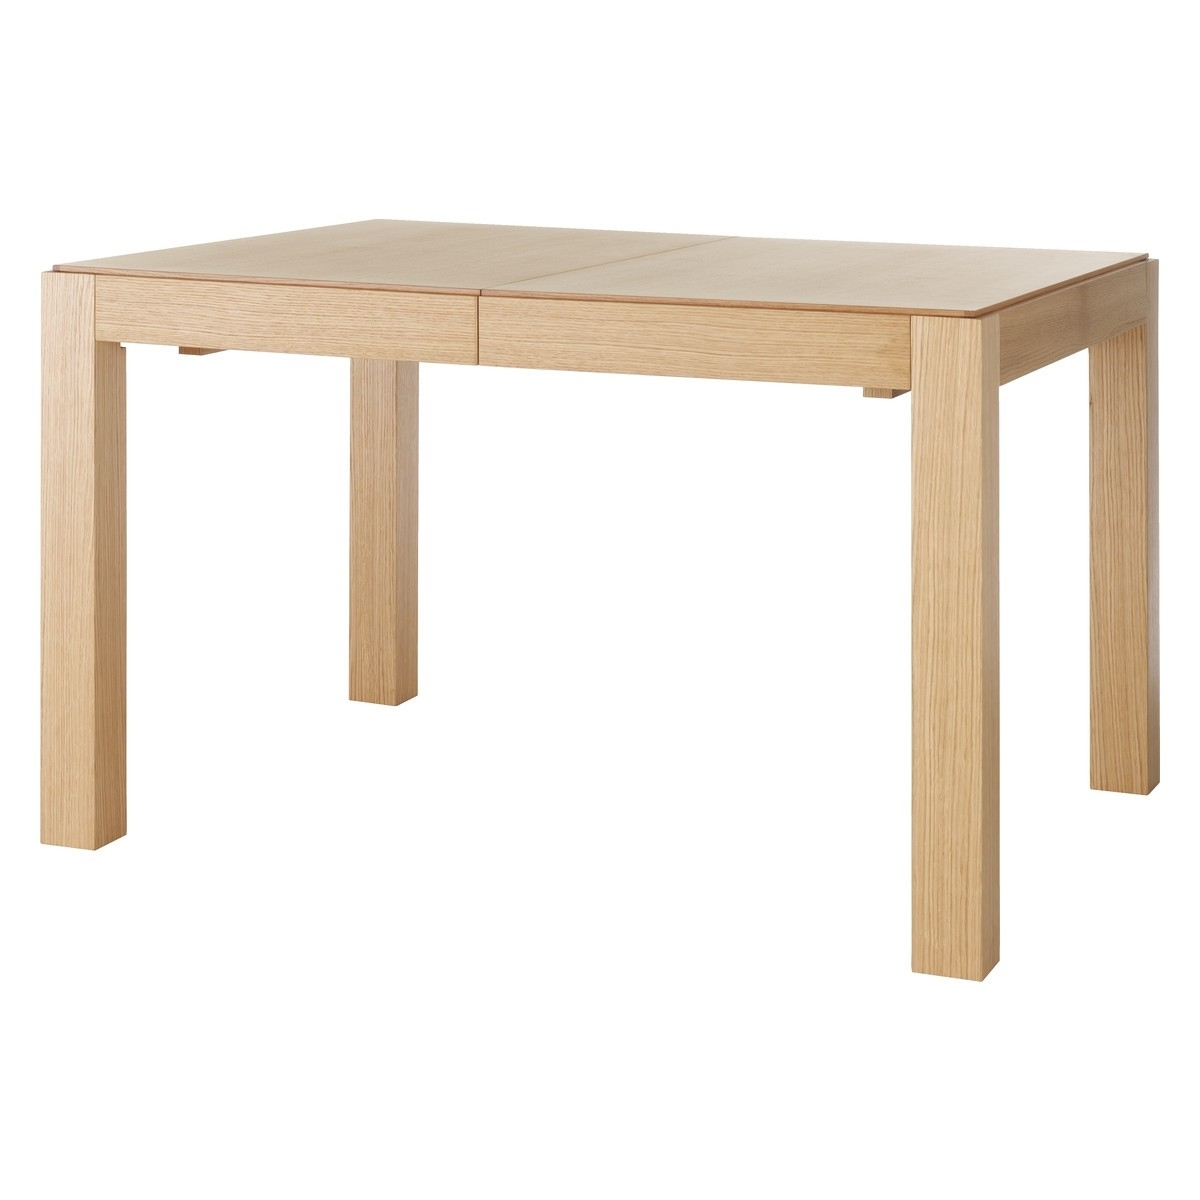 Extending Oak Dining Tables pertaining to Preferred Drio 4-10 Seat Oak Extending Dining Table